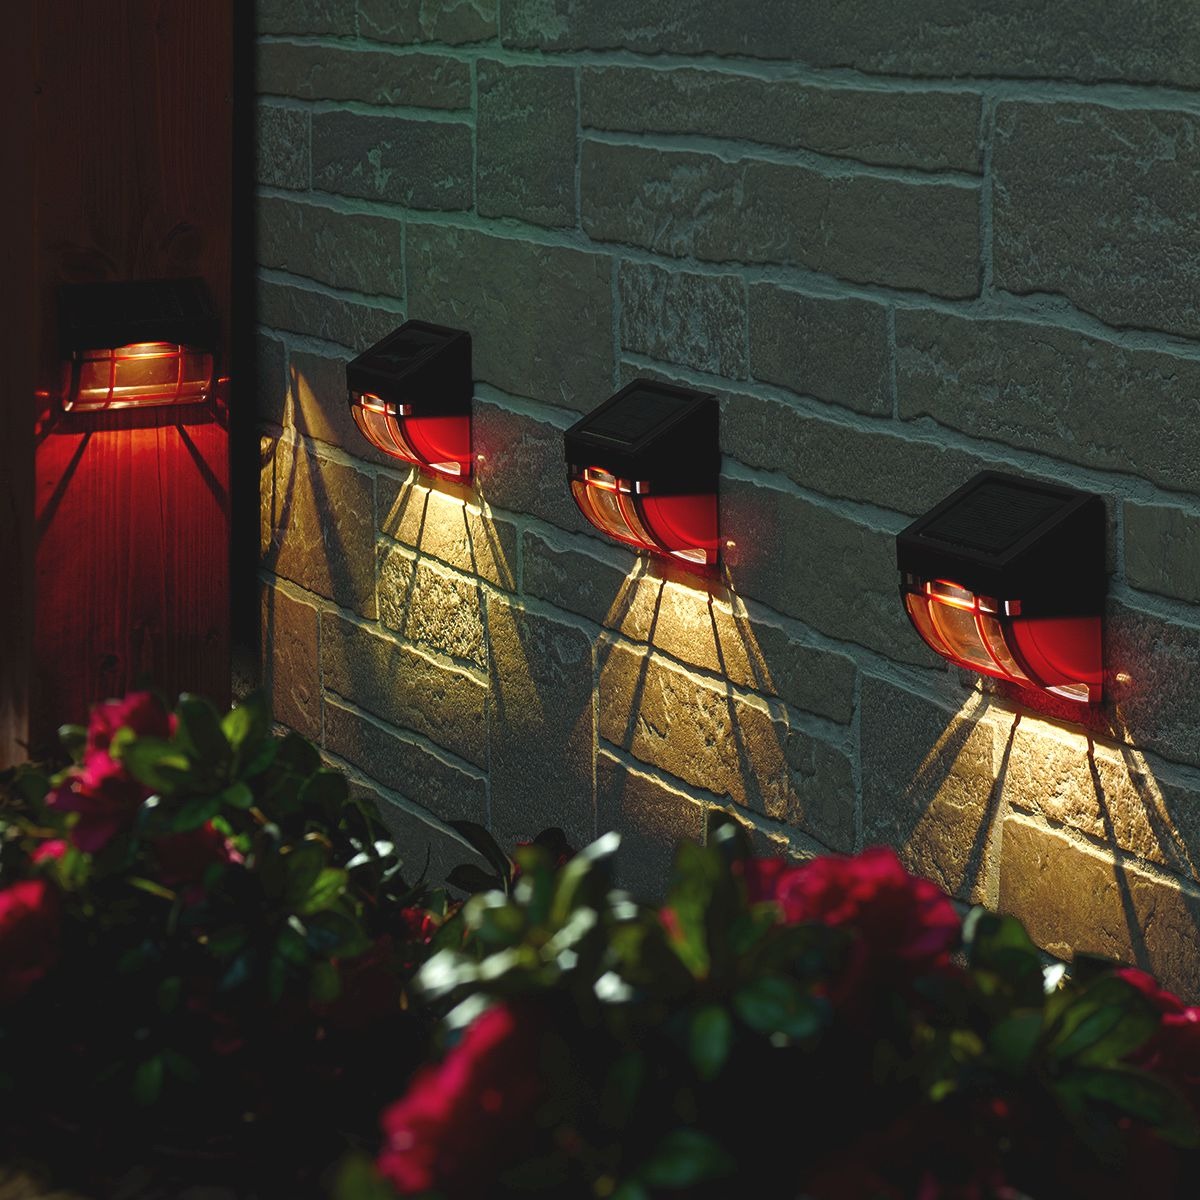 Mission Solar Wall Light 4 Pack Smart Living Home Garden